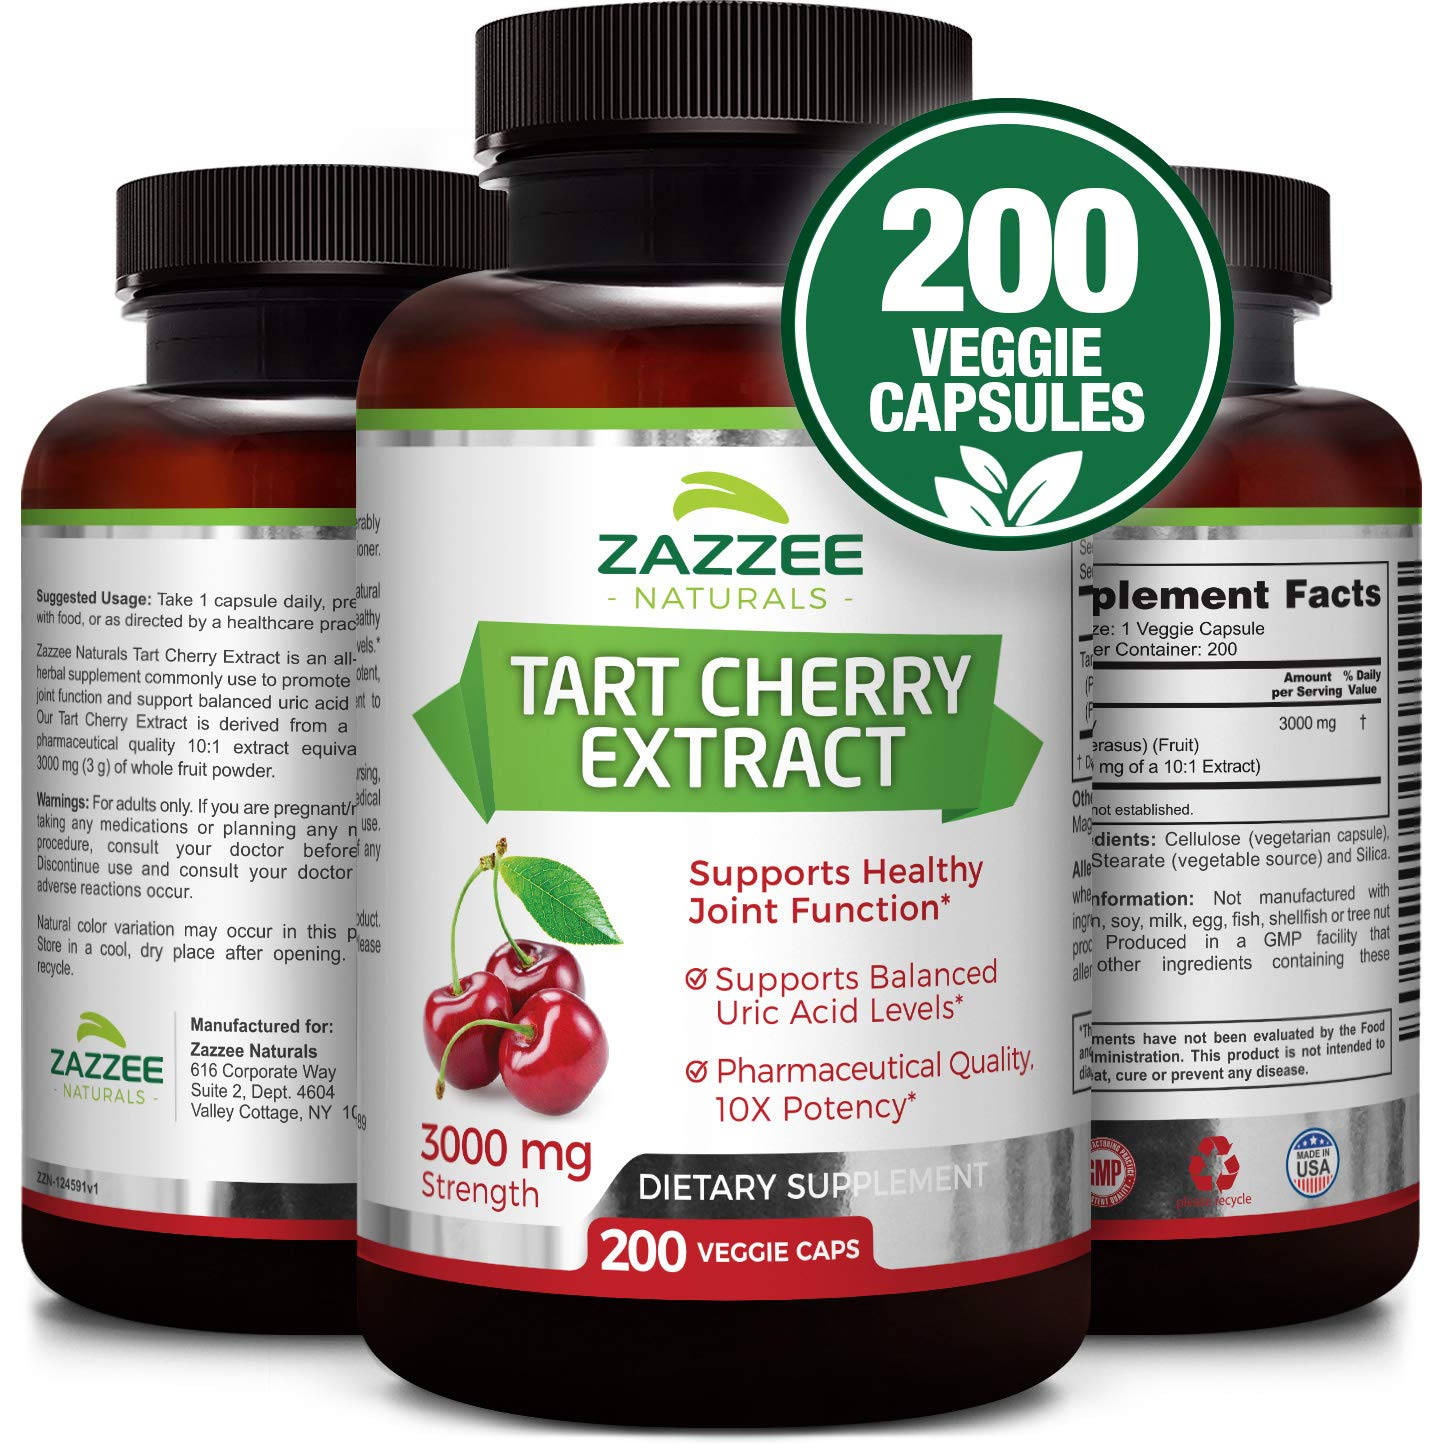 Tart Cherry Extract | 3000 mg Strength | 200 Veggie Caps | Potent 10:1 Extract | Over 6-Month Supply | Non-GMO, Vegan & All-Natural | Extra Strength Uric Acid Cleanse for Healthy Joints | Made in USA